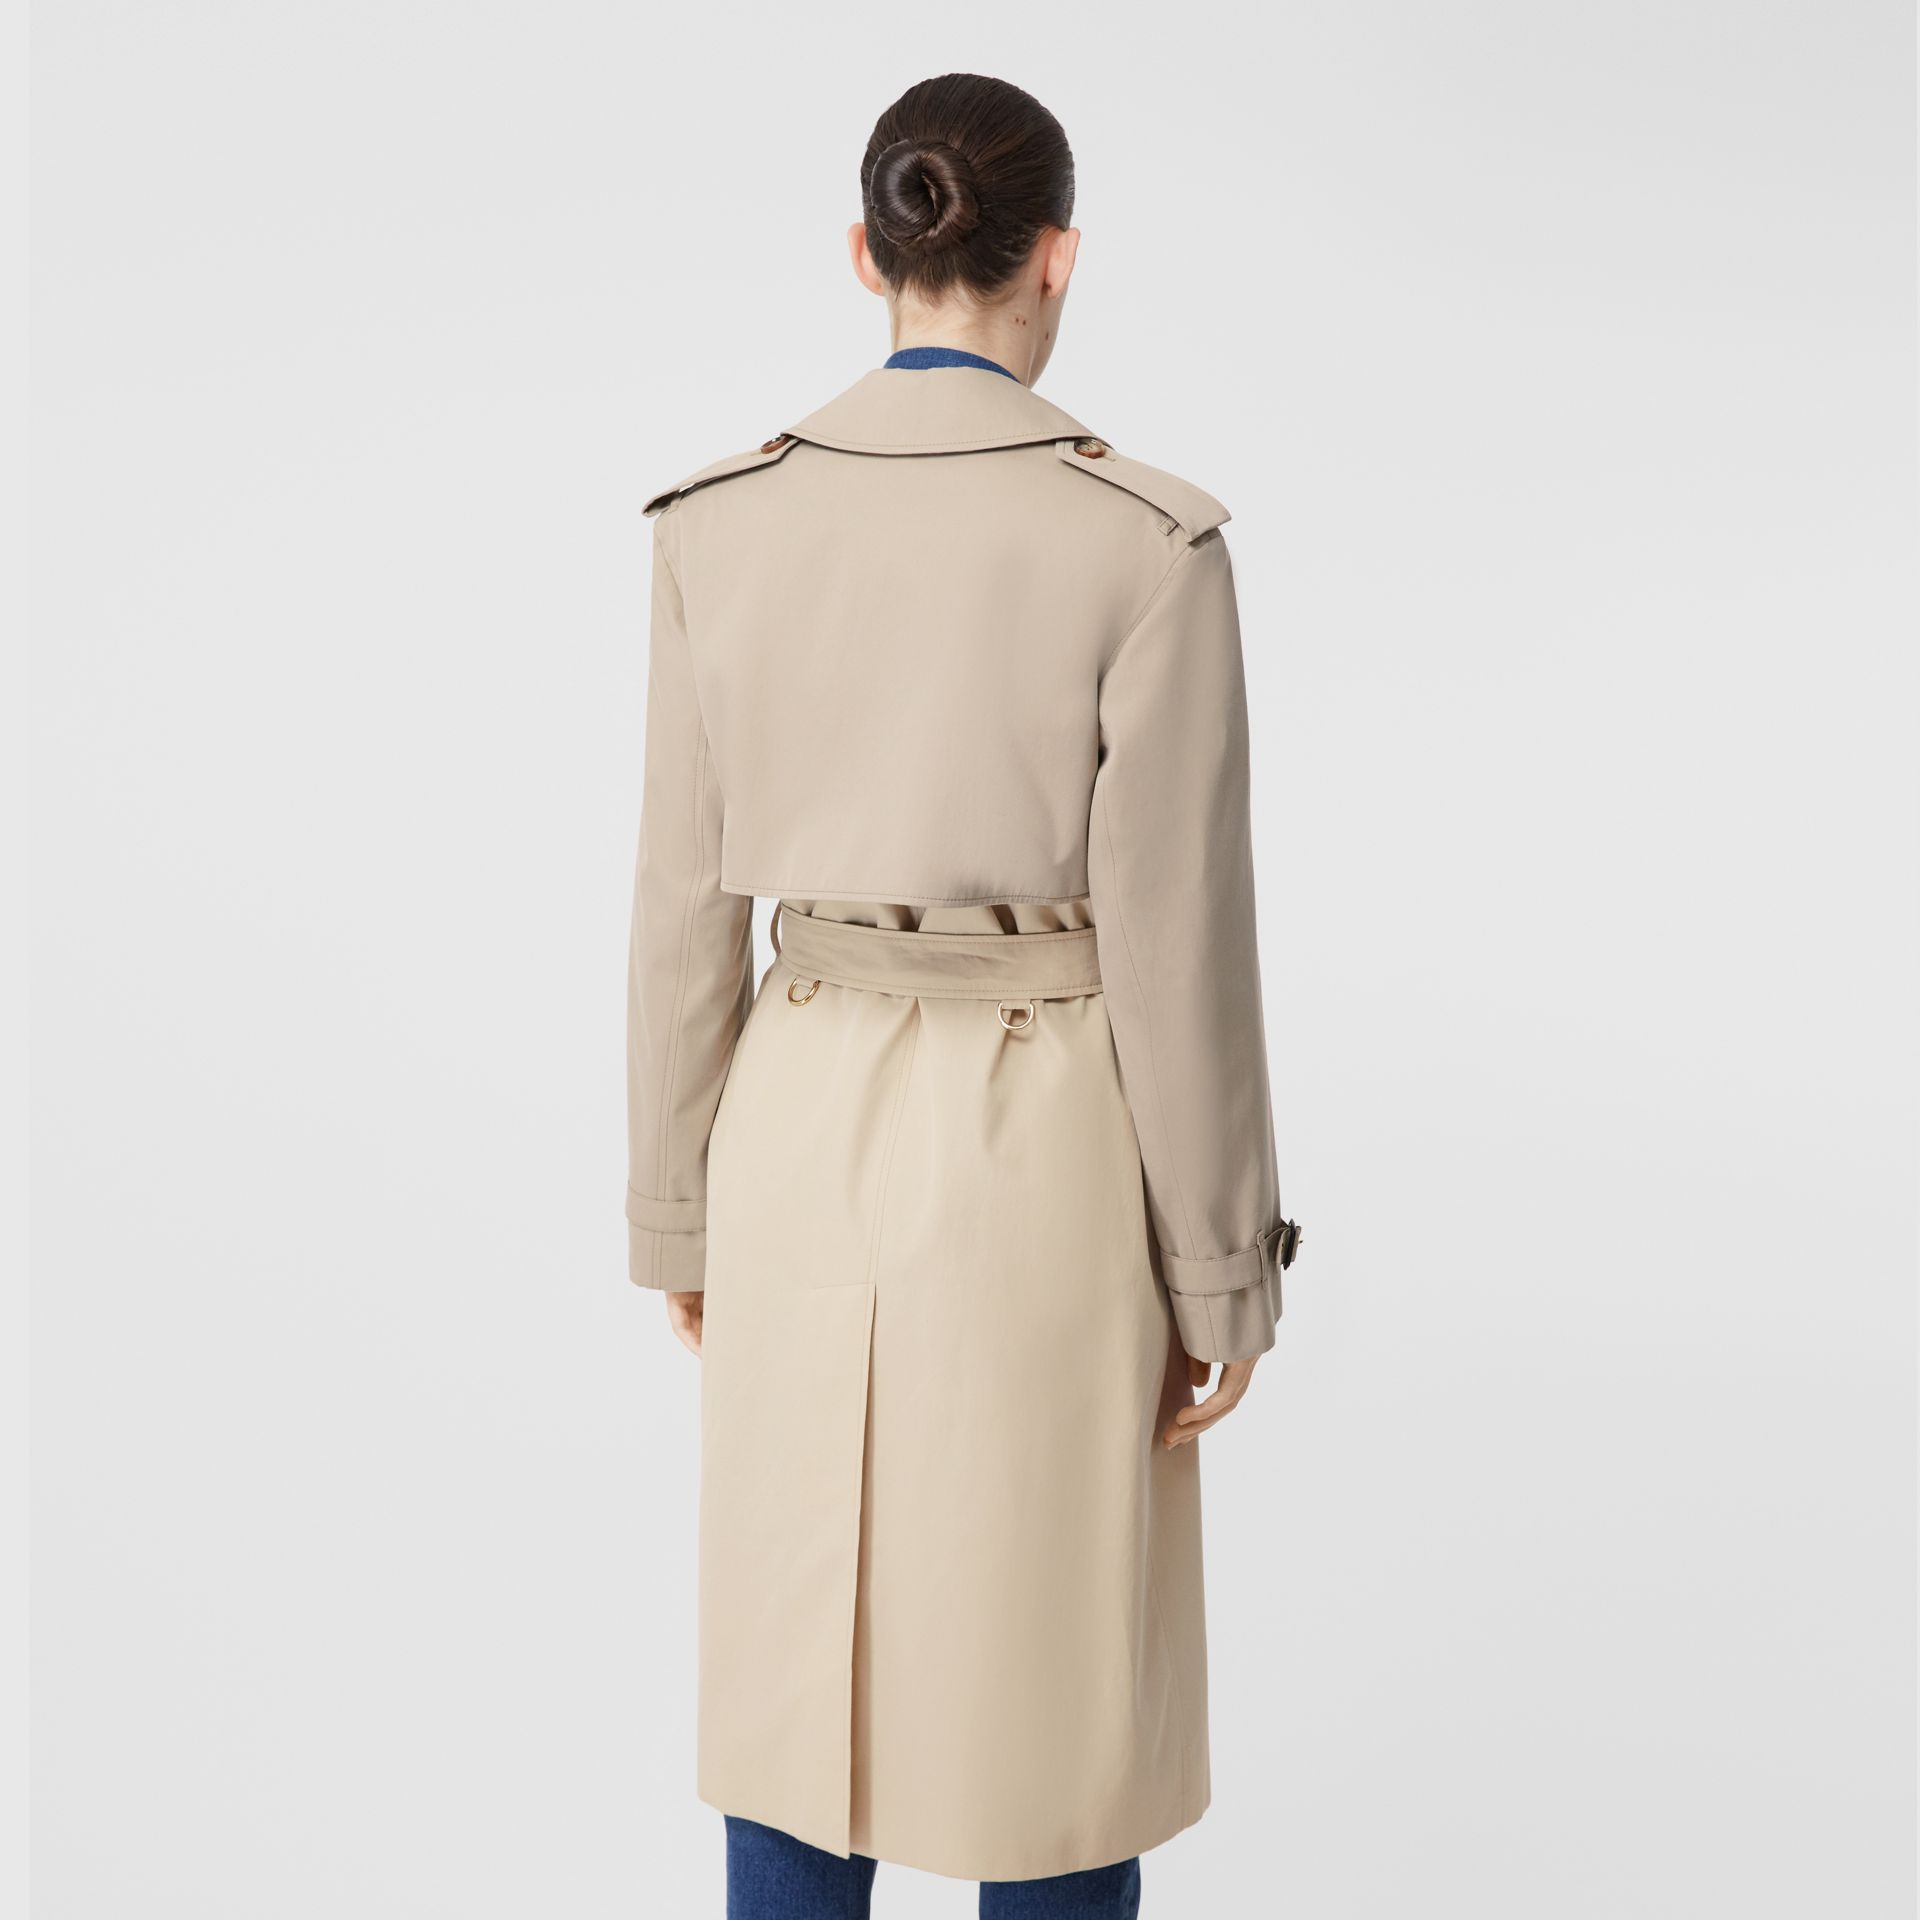 Two-tone Reconstructed Trench Coat in Light Sand - Women | Burberry - gallery image 2